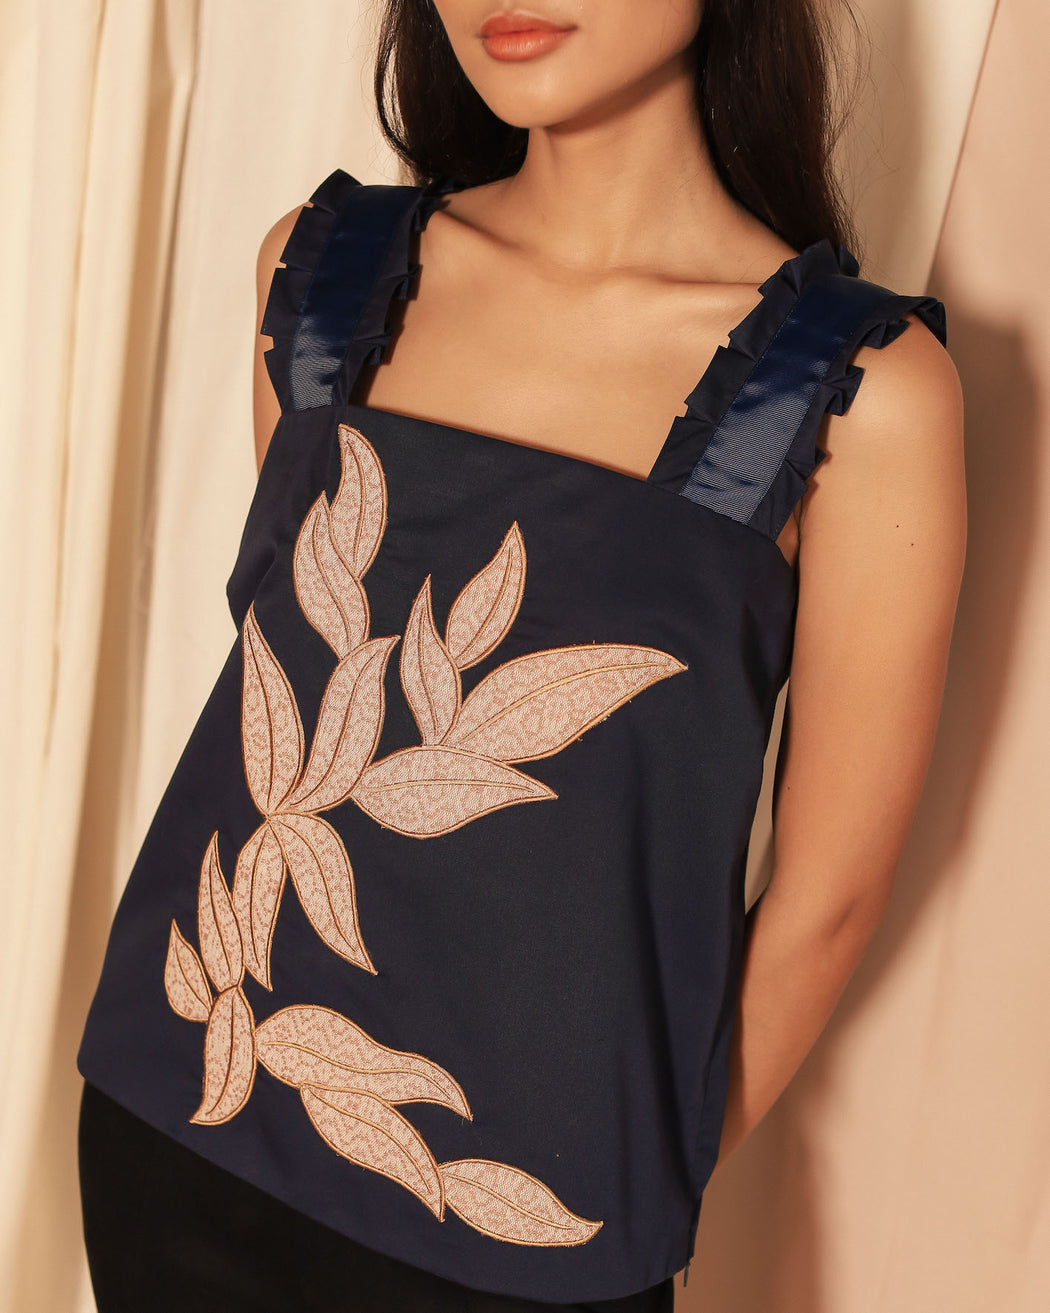 Ligaya Embroidered Blouse - Navy Blue